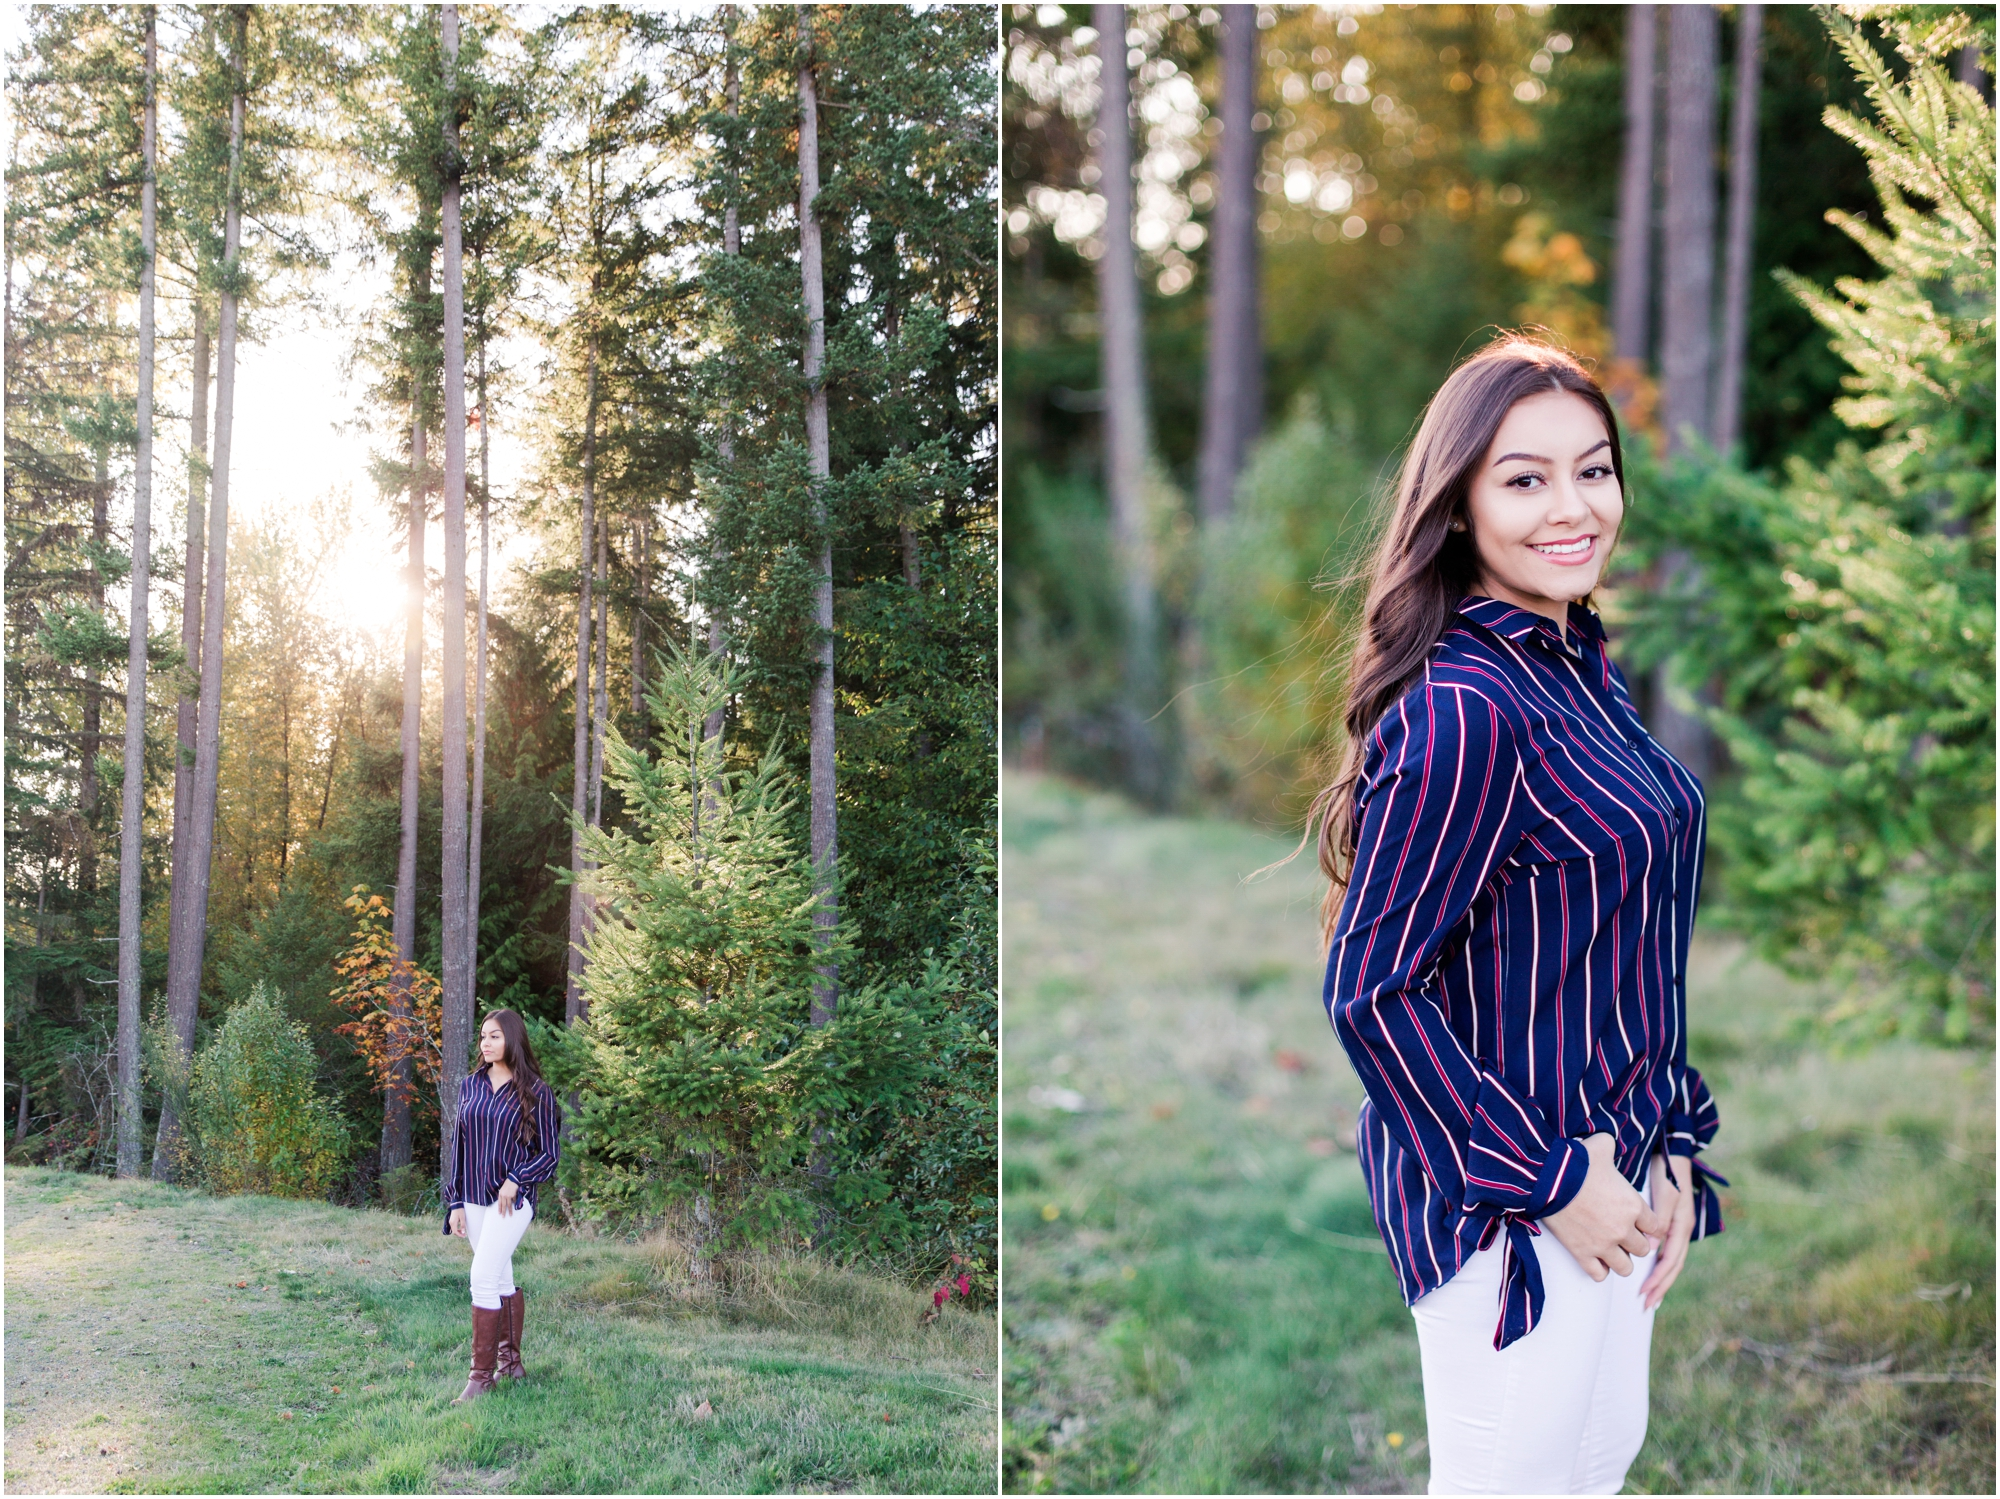 High School Senior portriats by Briana Calderon Photography based in the Greater Seattle & Tacoma, WA_0937.jpg